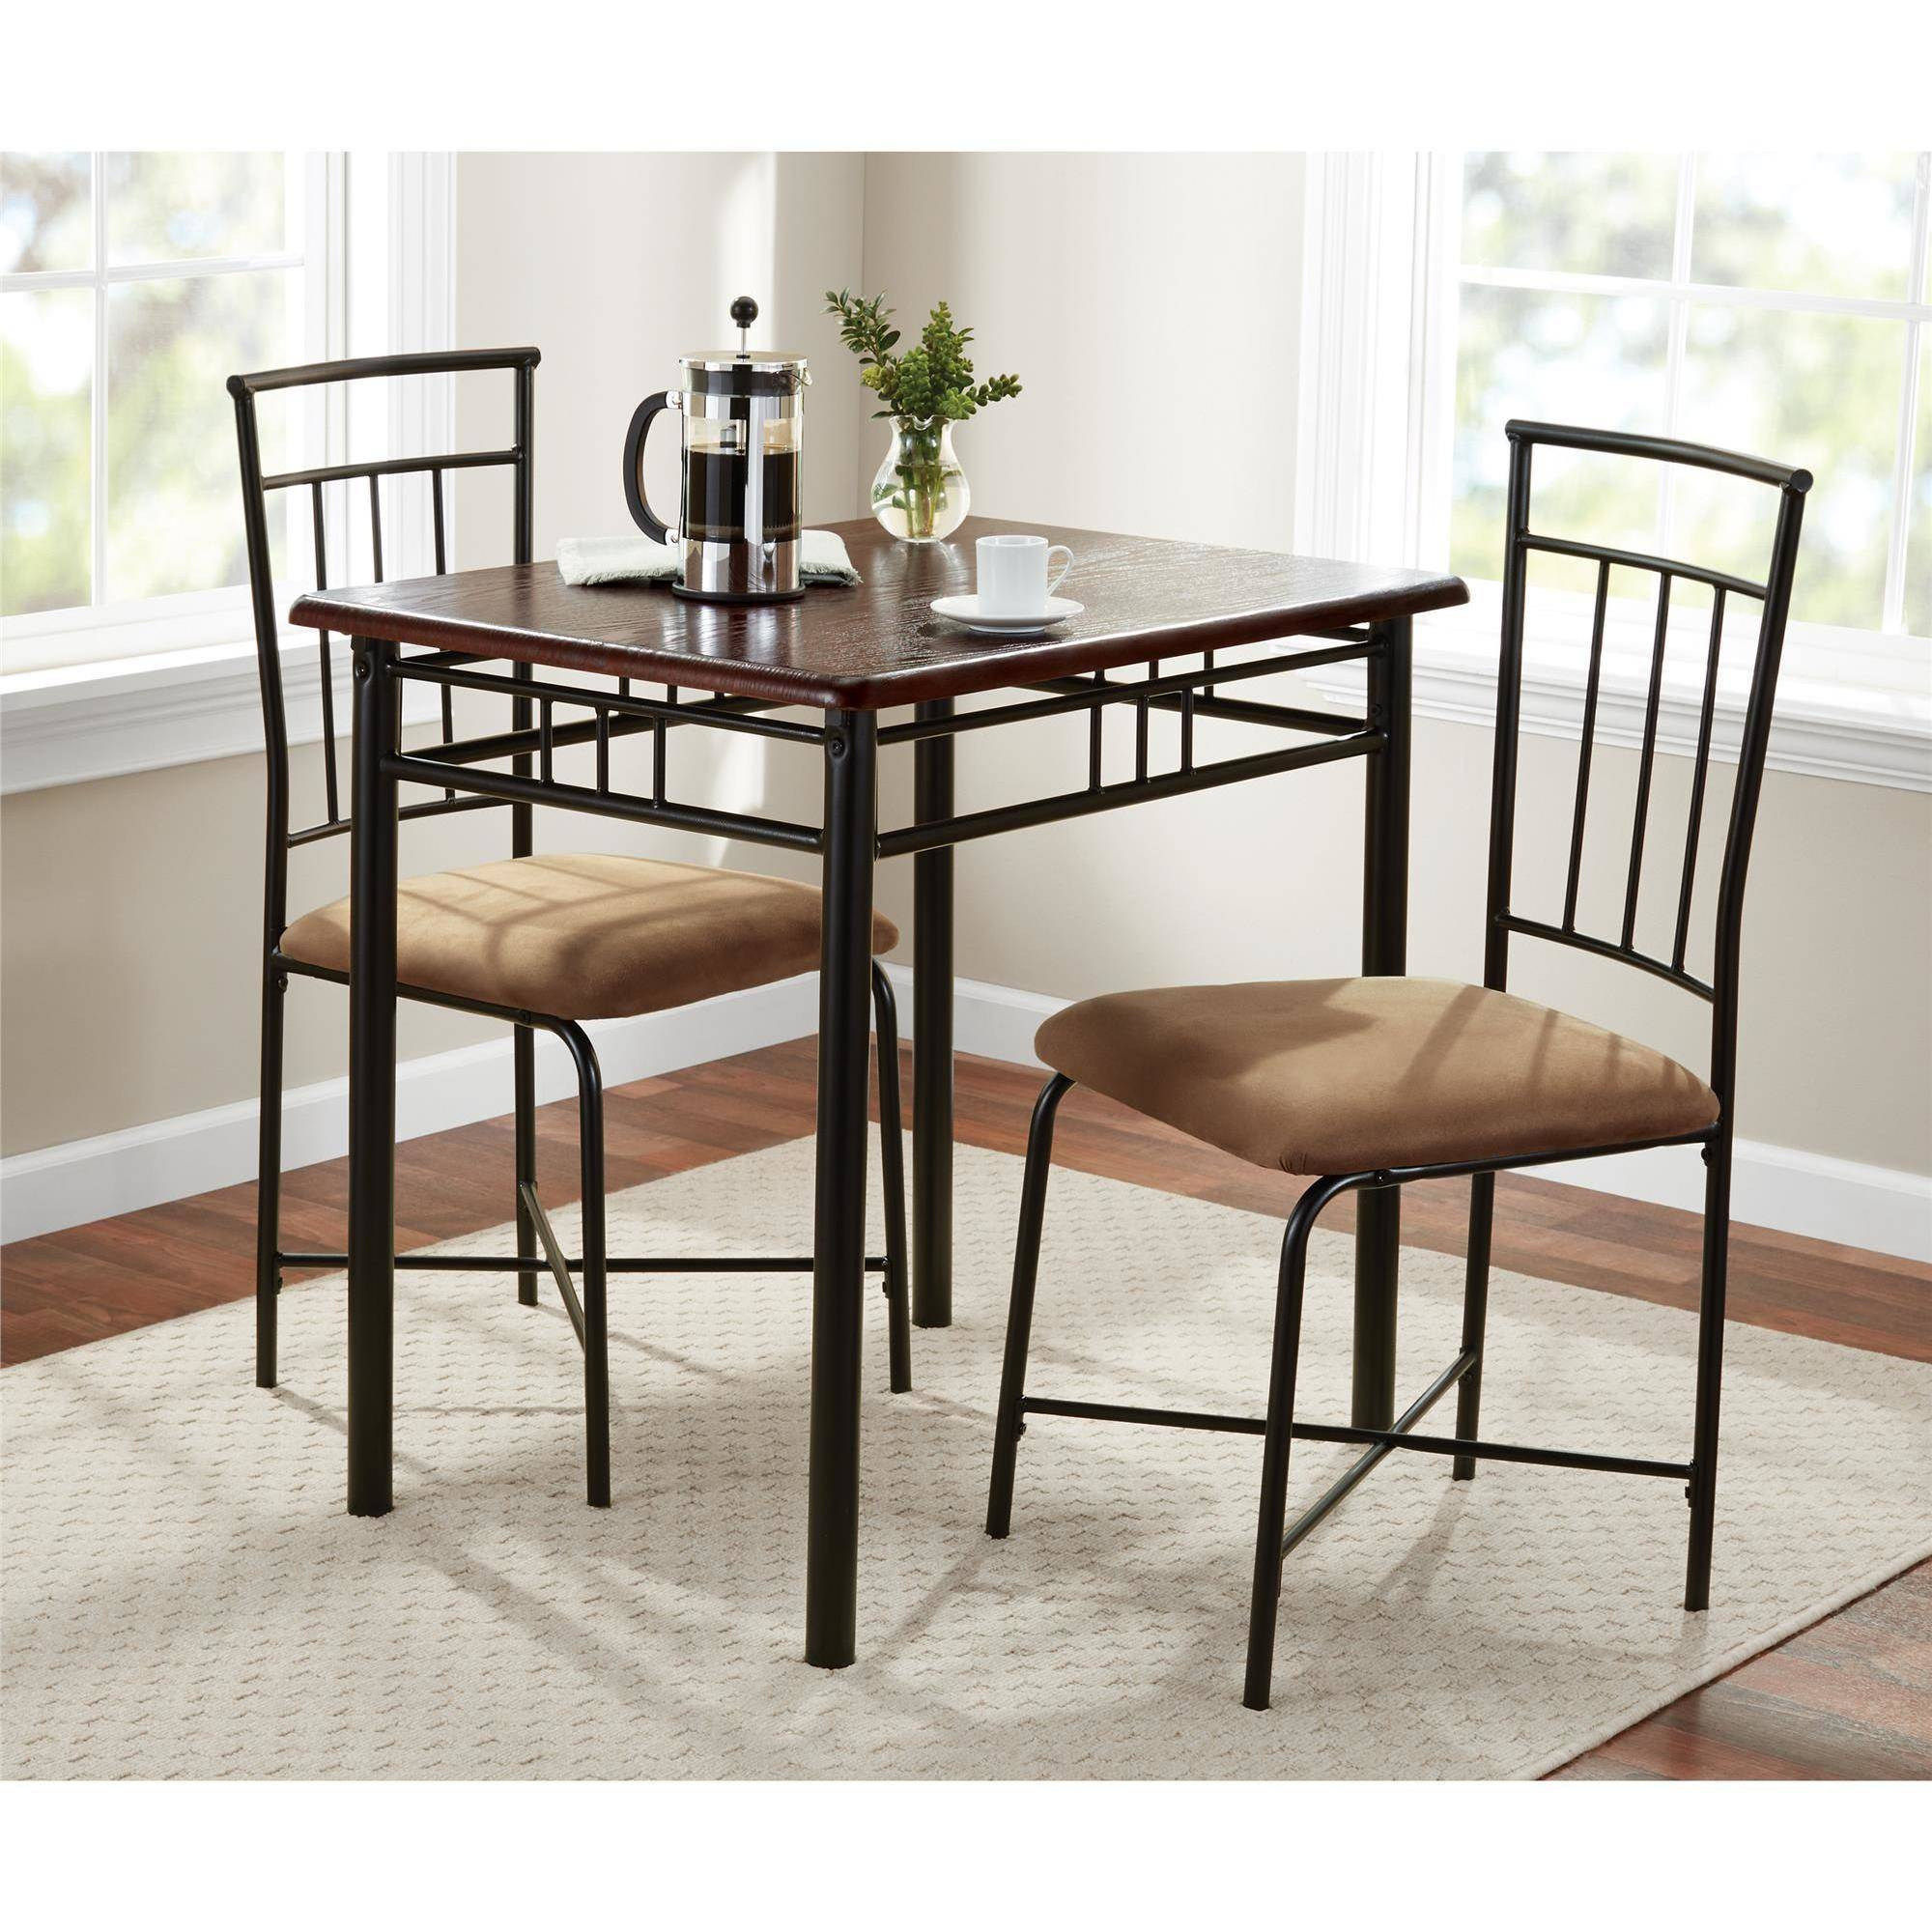 Latest Mainstays 3 Piece Dining Set, Wood And Metal – Walmart Within Bearden 3 Piece Dining Sets (#9 of 20)